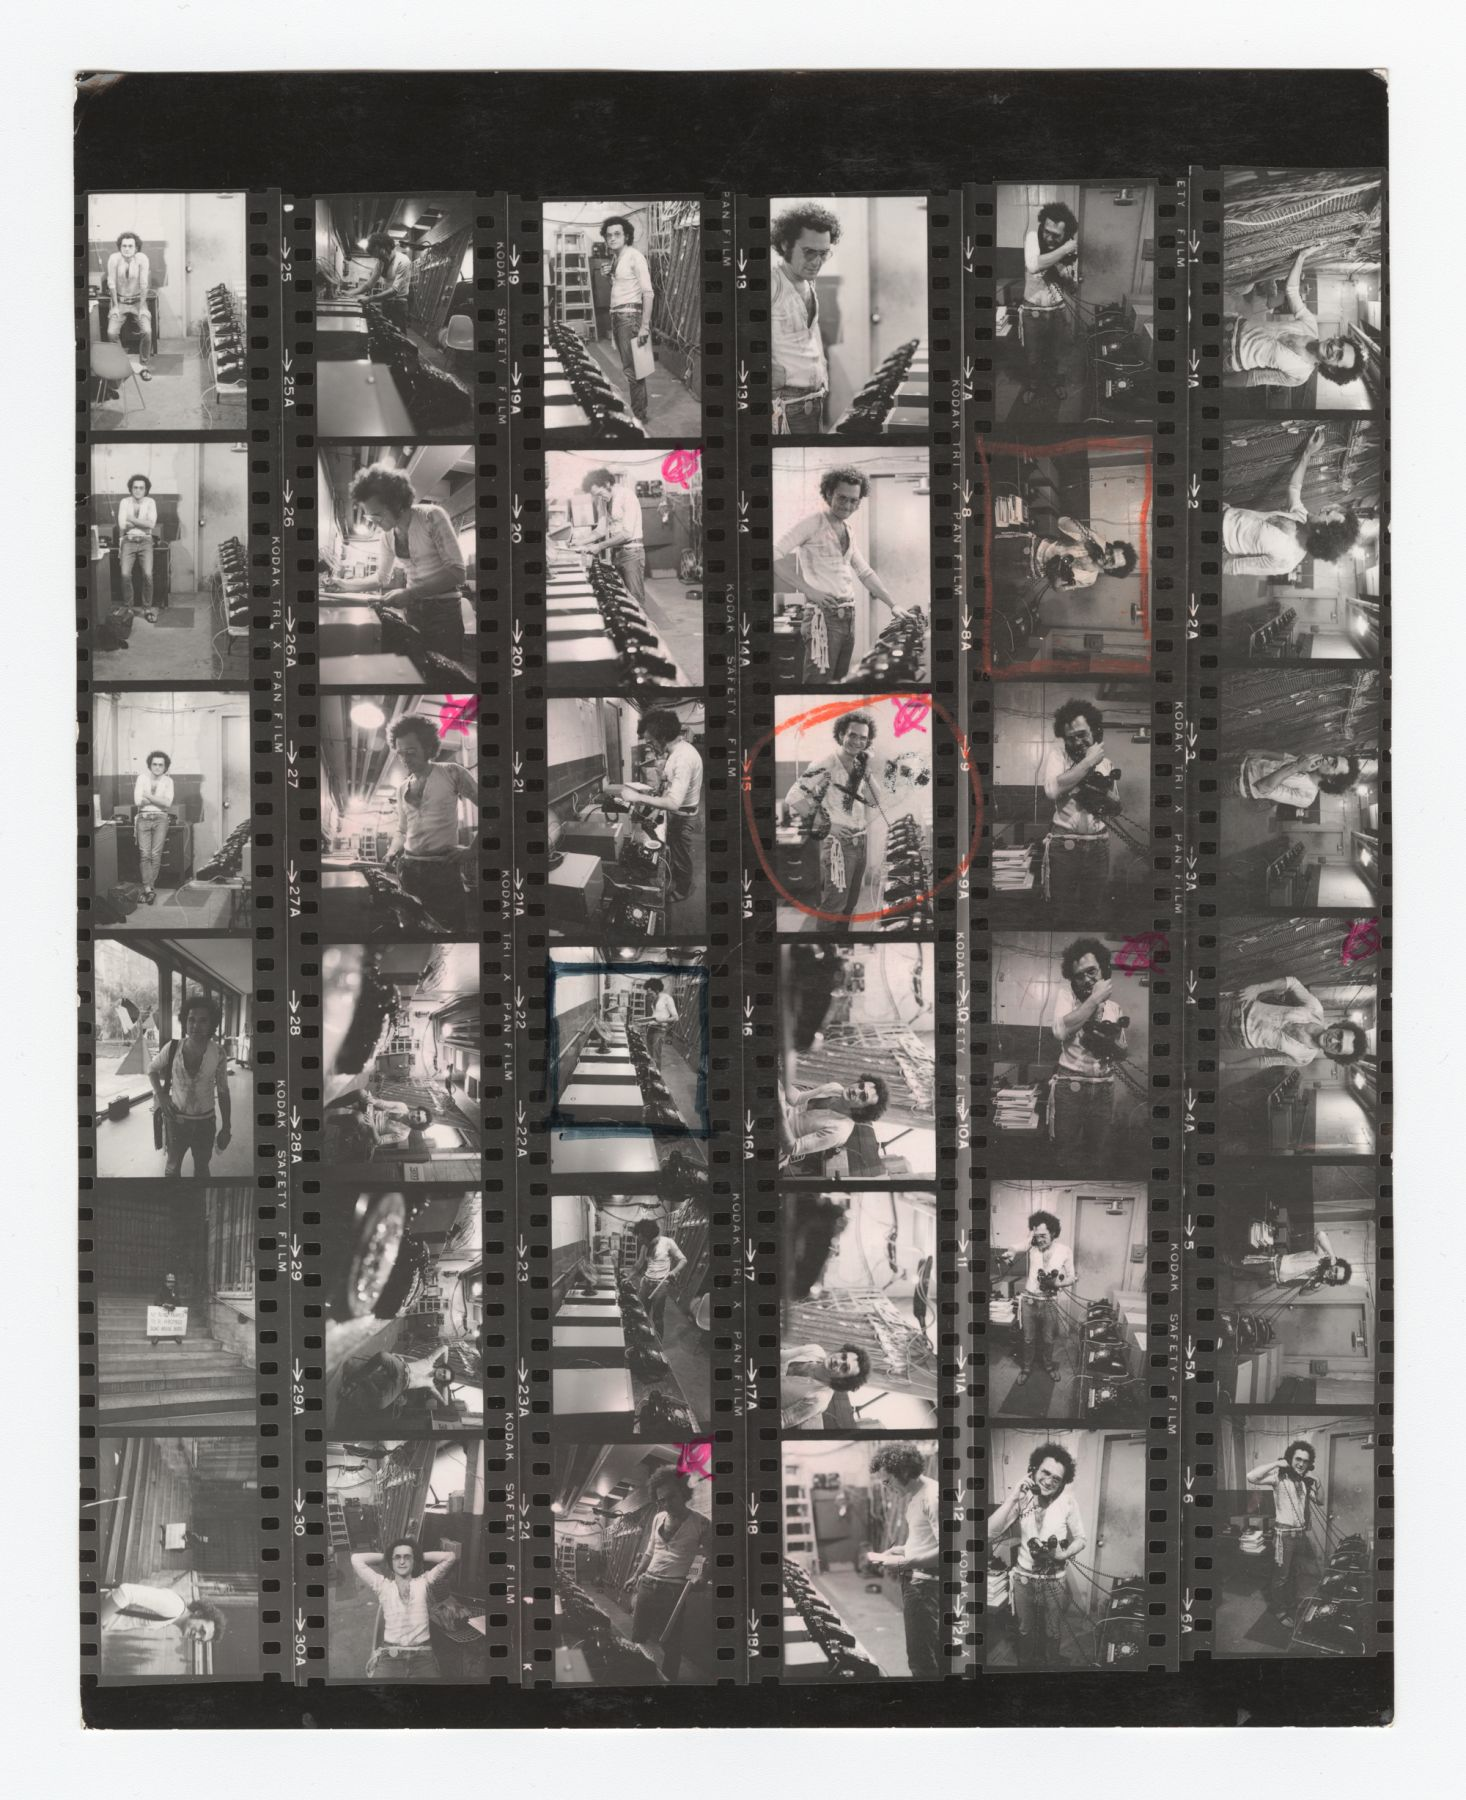 Dial-A-Poem MoMA Contact Sheet, 1970